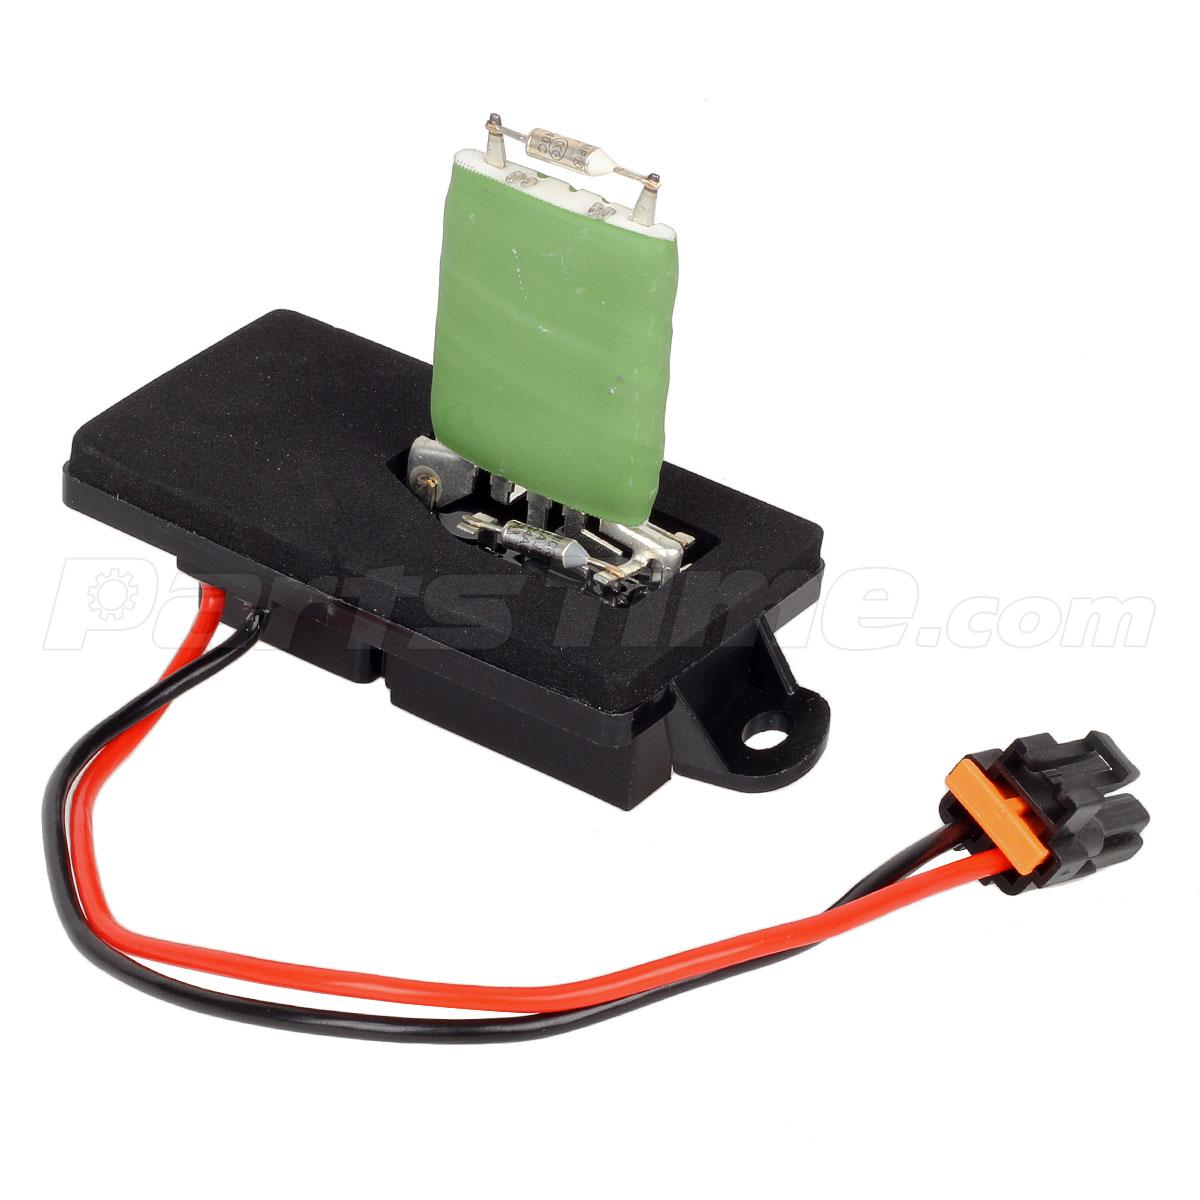 Hvac Blower Harness Great Design Of Wiring Diagram Bmw E46 Wiper Motor Replacement Repalcement Parts And Resistor W Wire For Cadillac Furnace